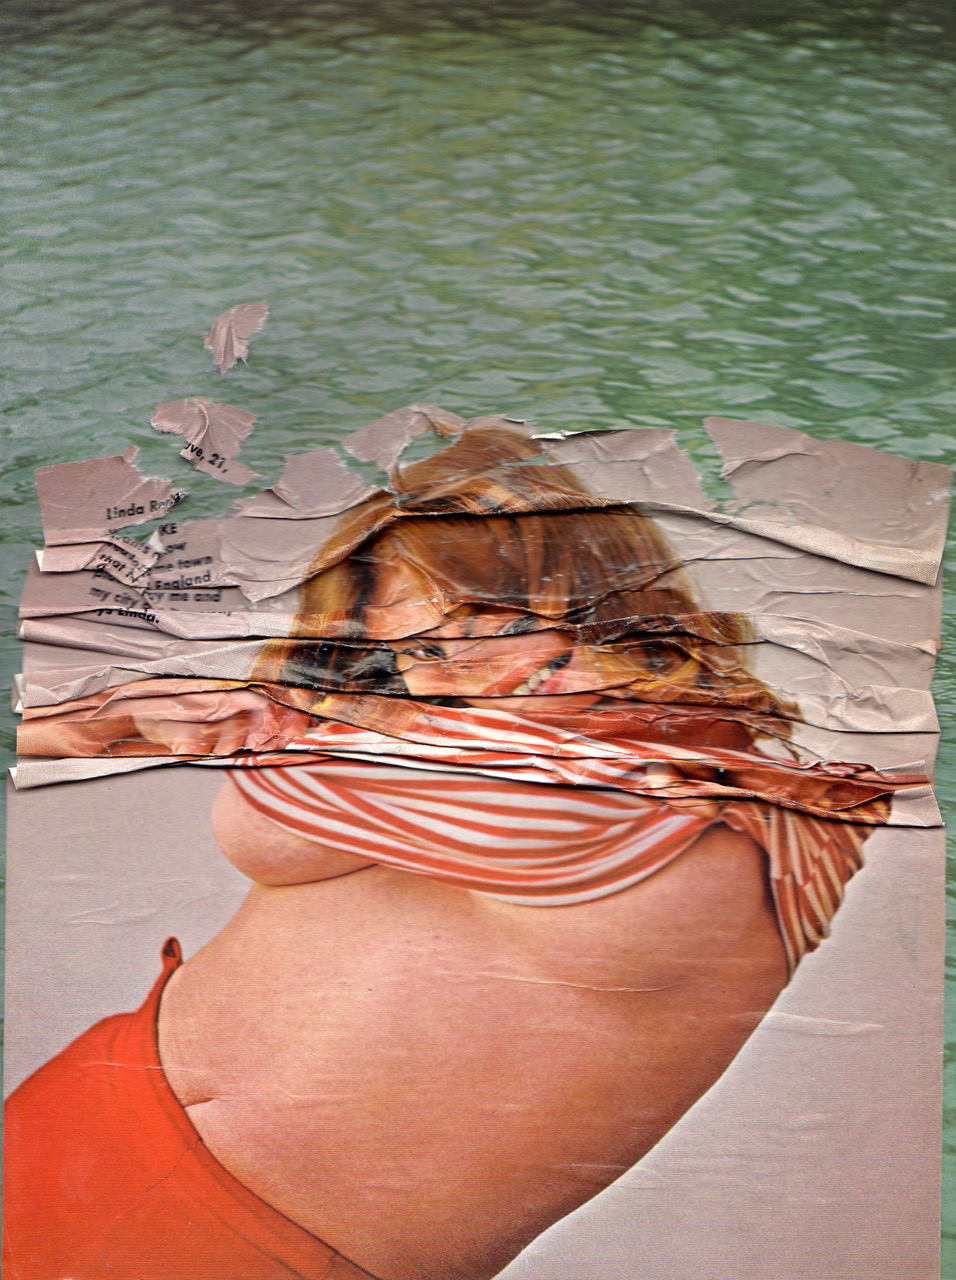 "Monica Zeringue,  Ripple , collaged found image, 14.5x11.75"", 2016"